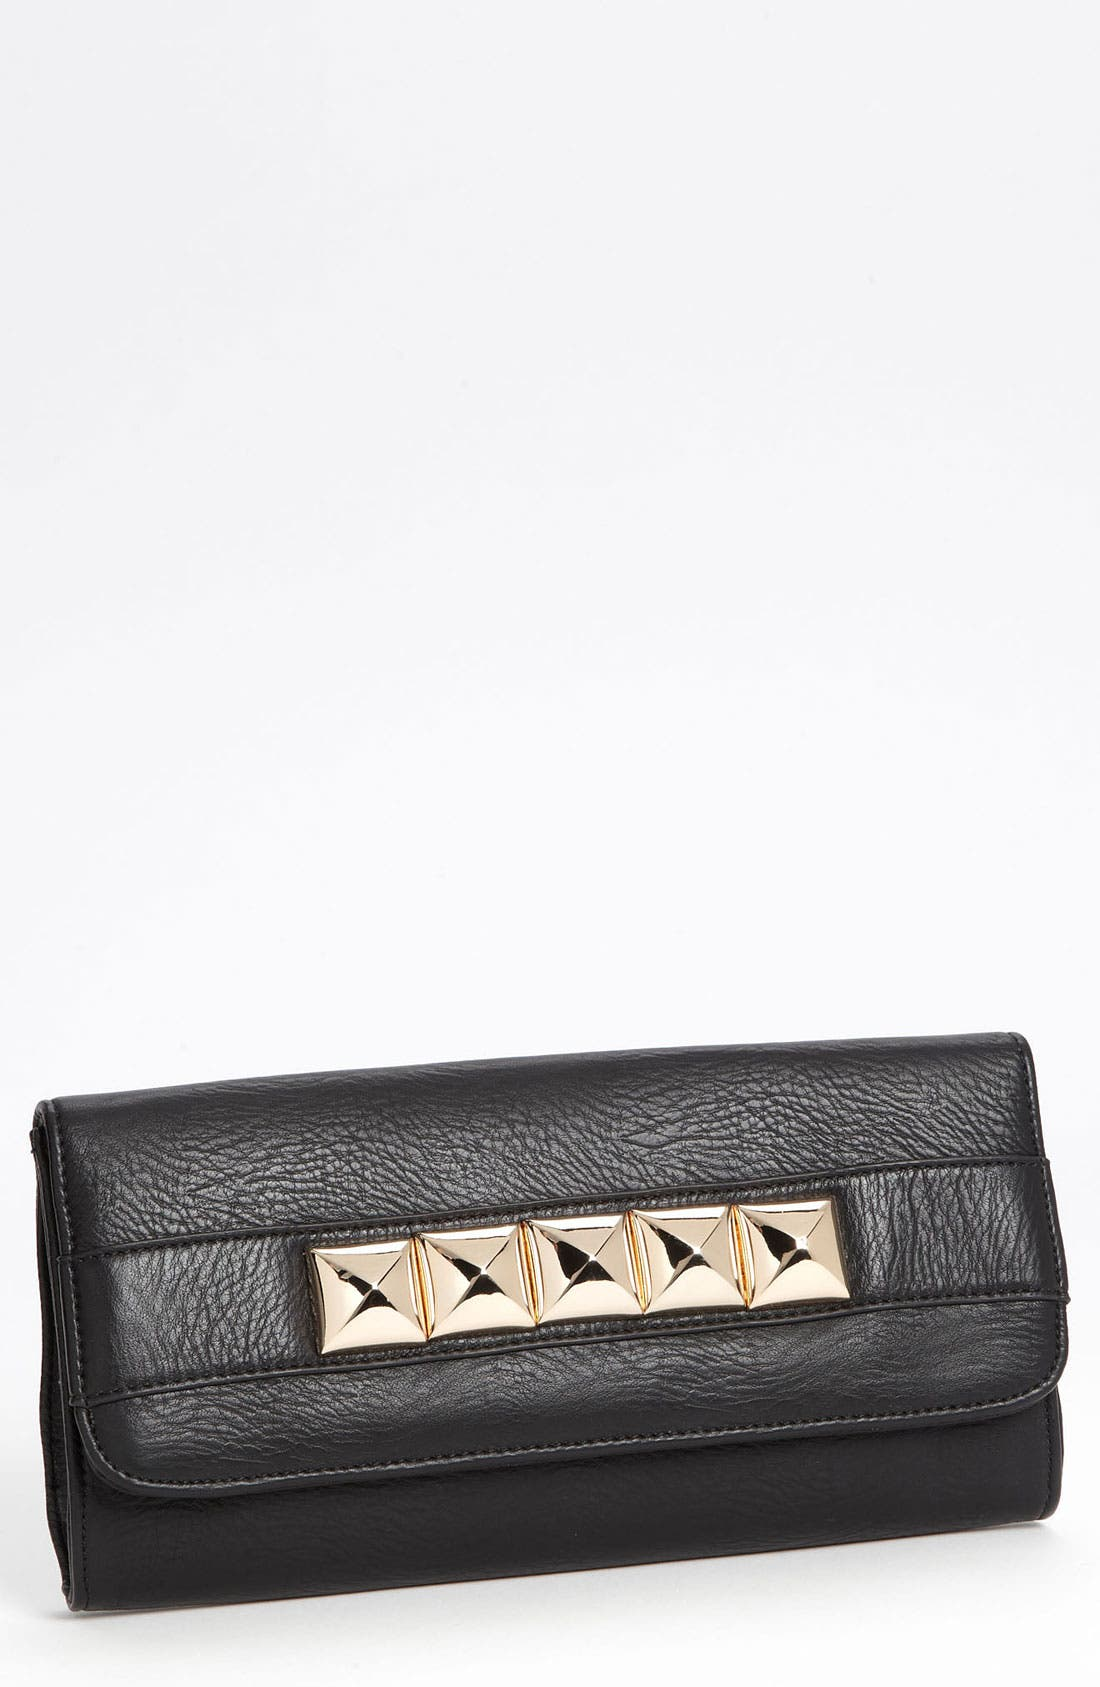 Alternate Image 1 Selected - Street Level Pyramid Stud Convertible Clutch